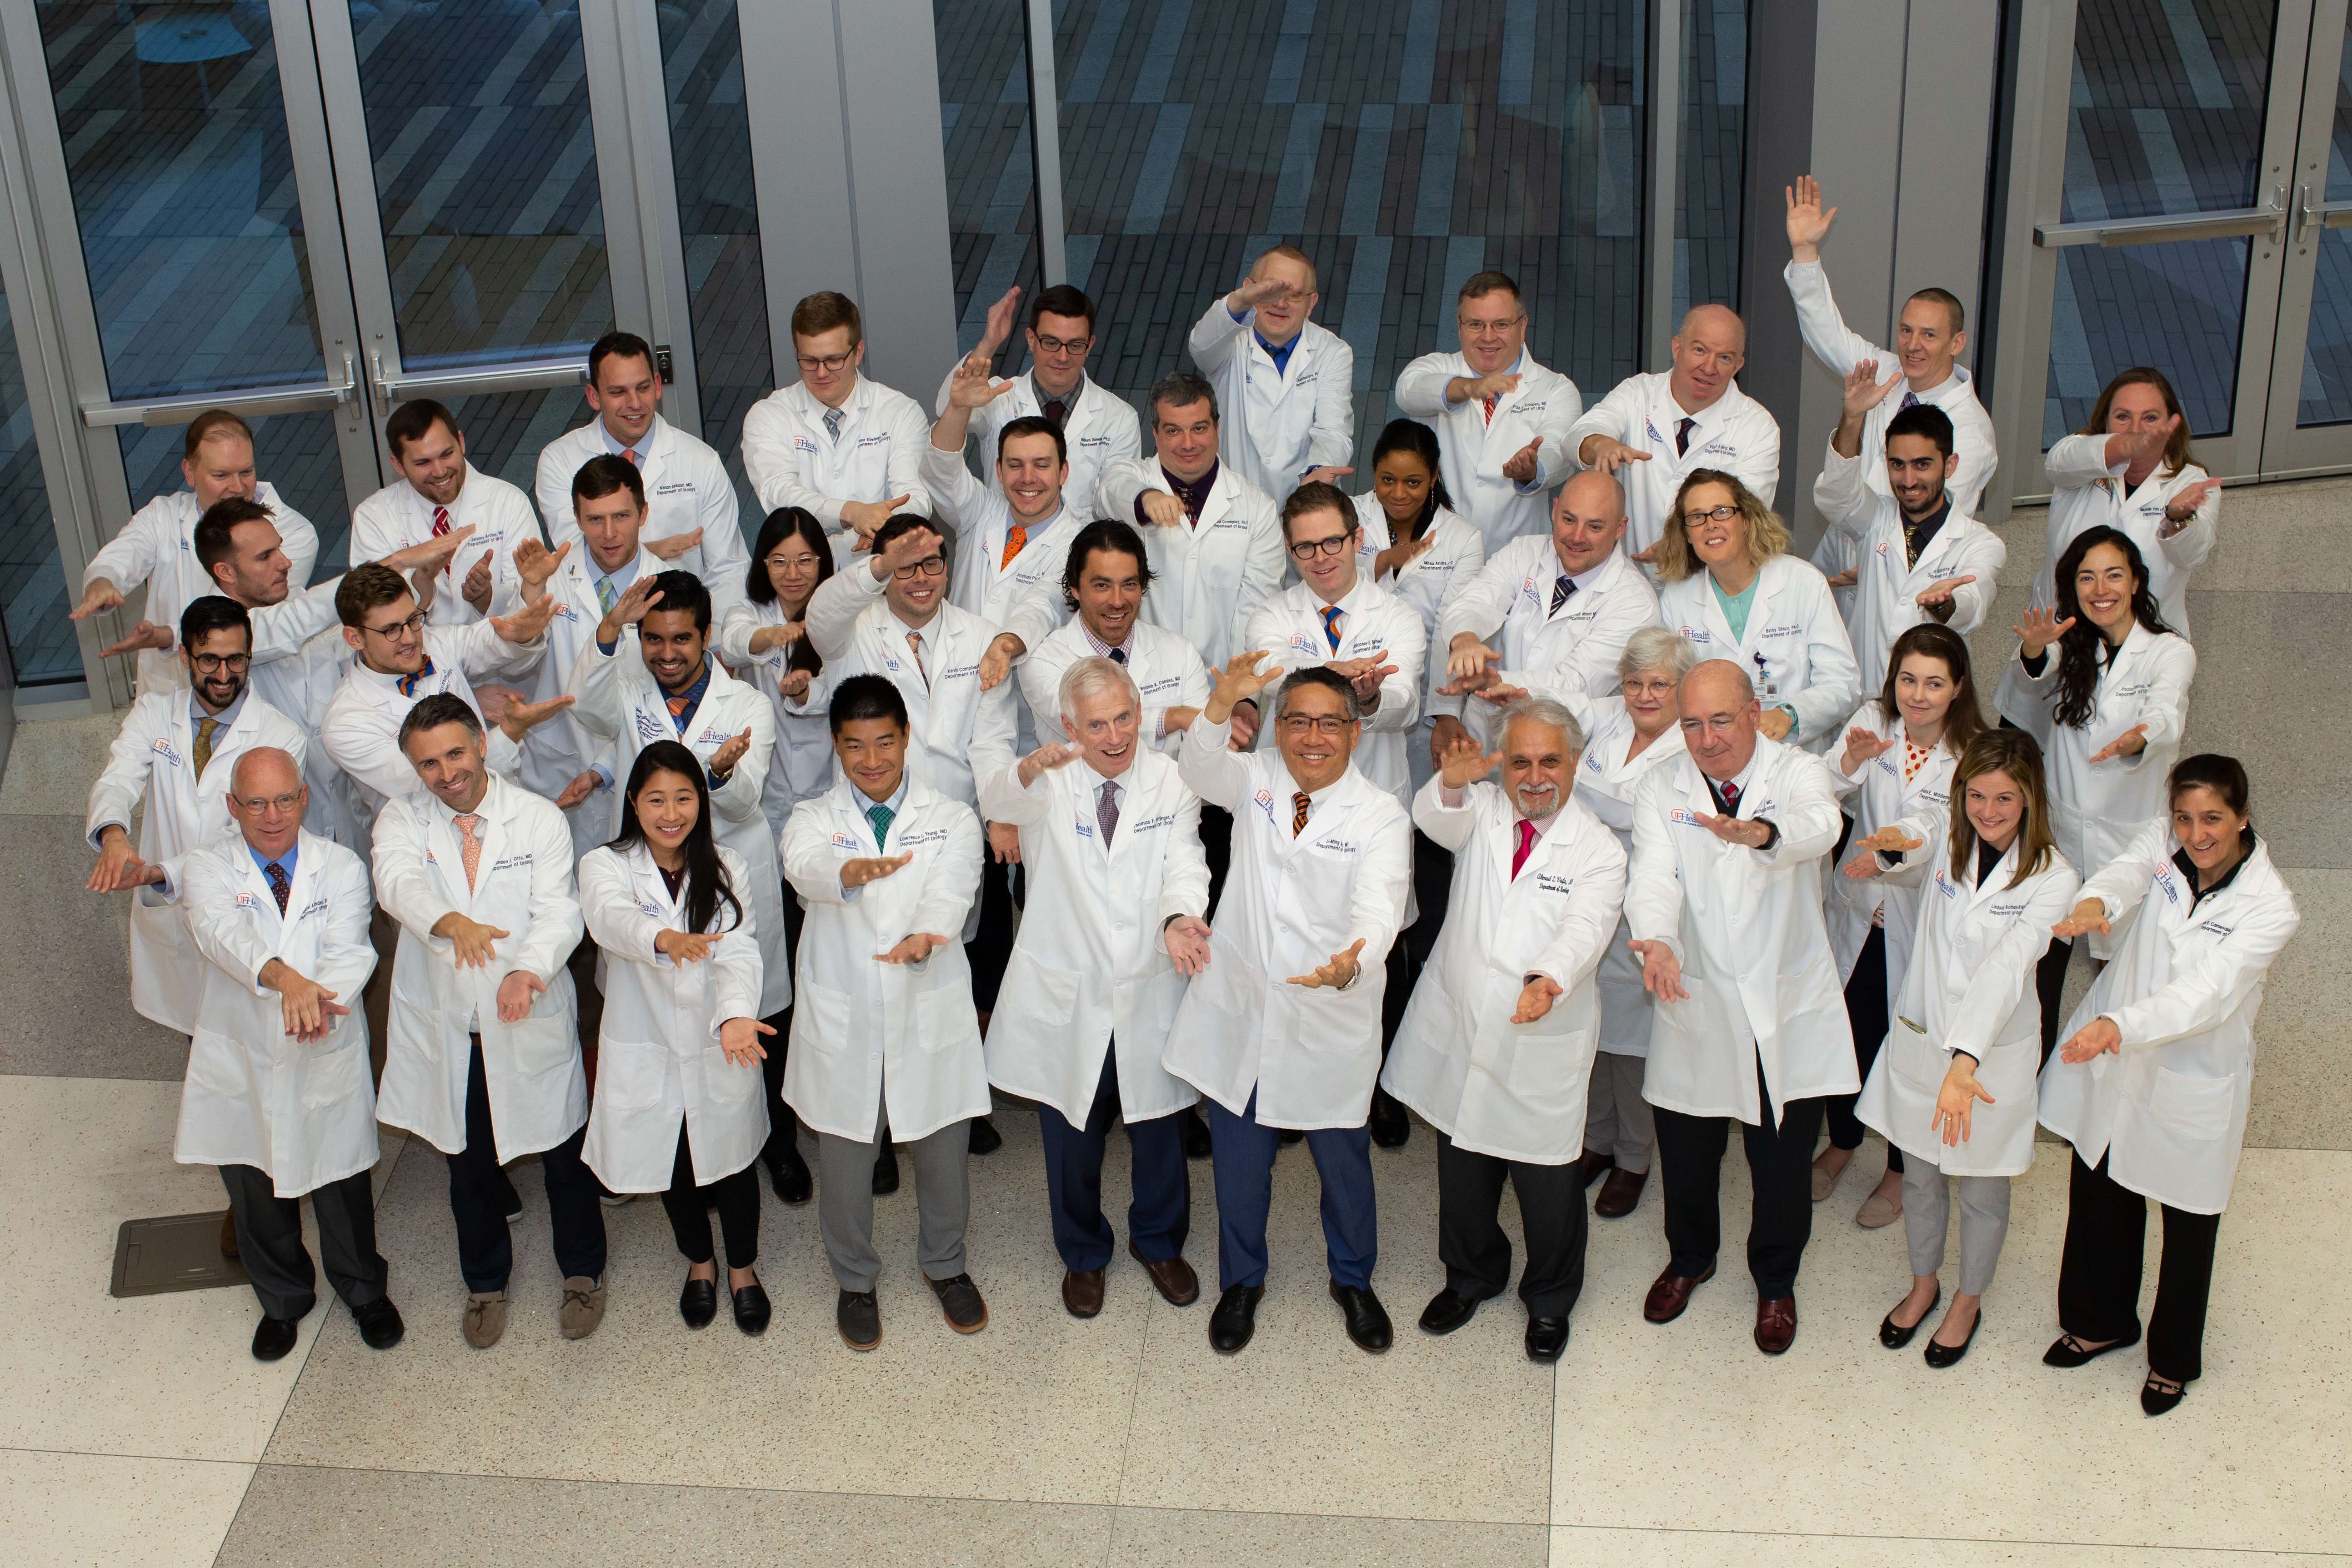 group picture of uf health urology faculty doing the gator chomp